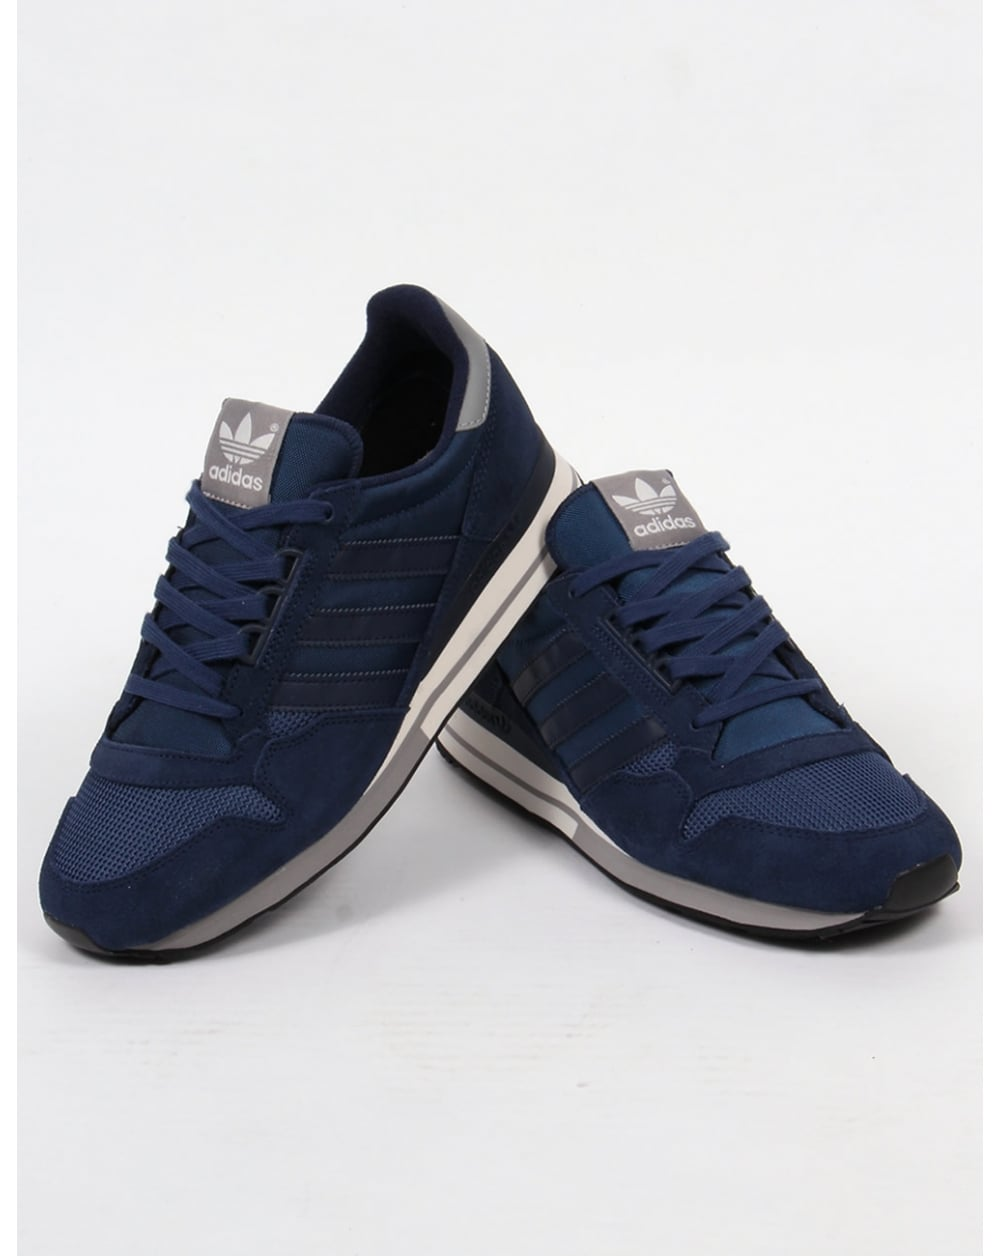 3a9d31b29 Adidas ZX 500 OG Trainers Navy White Solid Grey